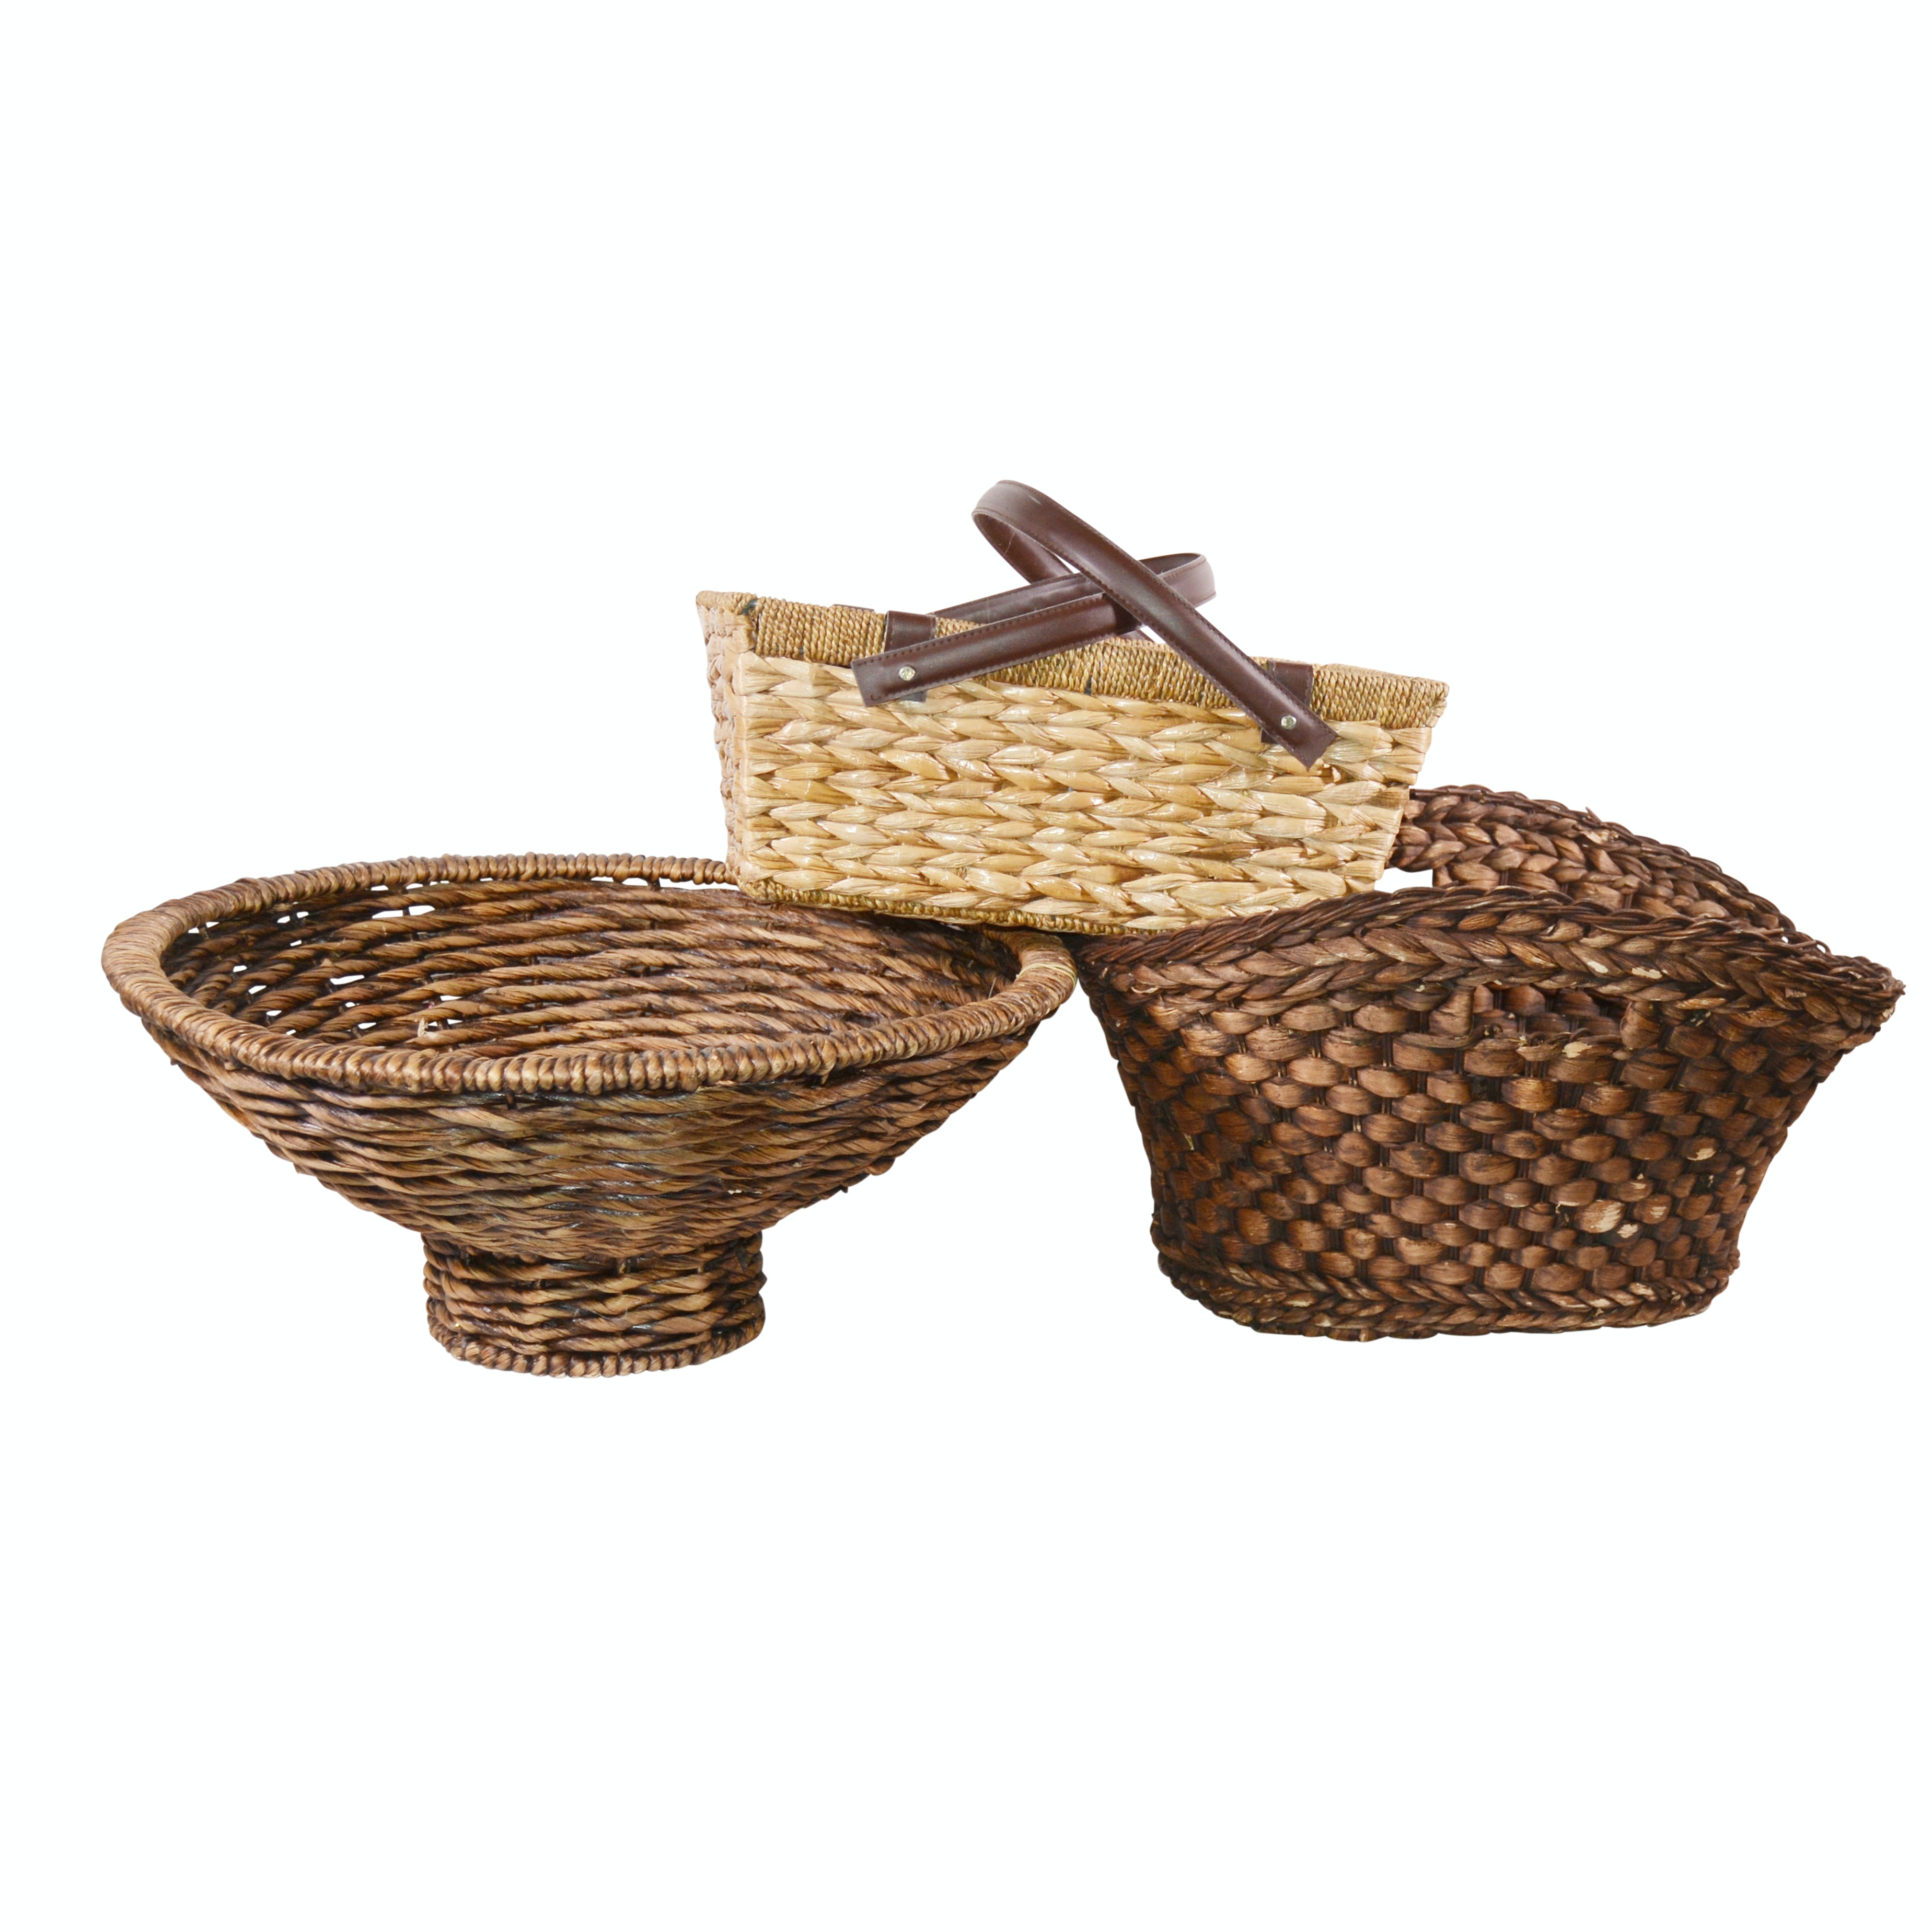 Woven Grass and Wicker Baskets